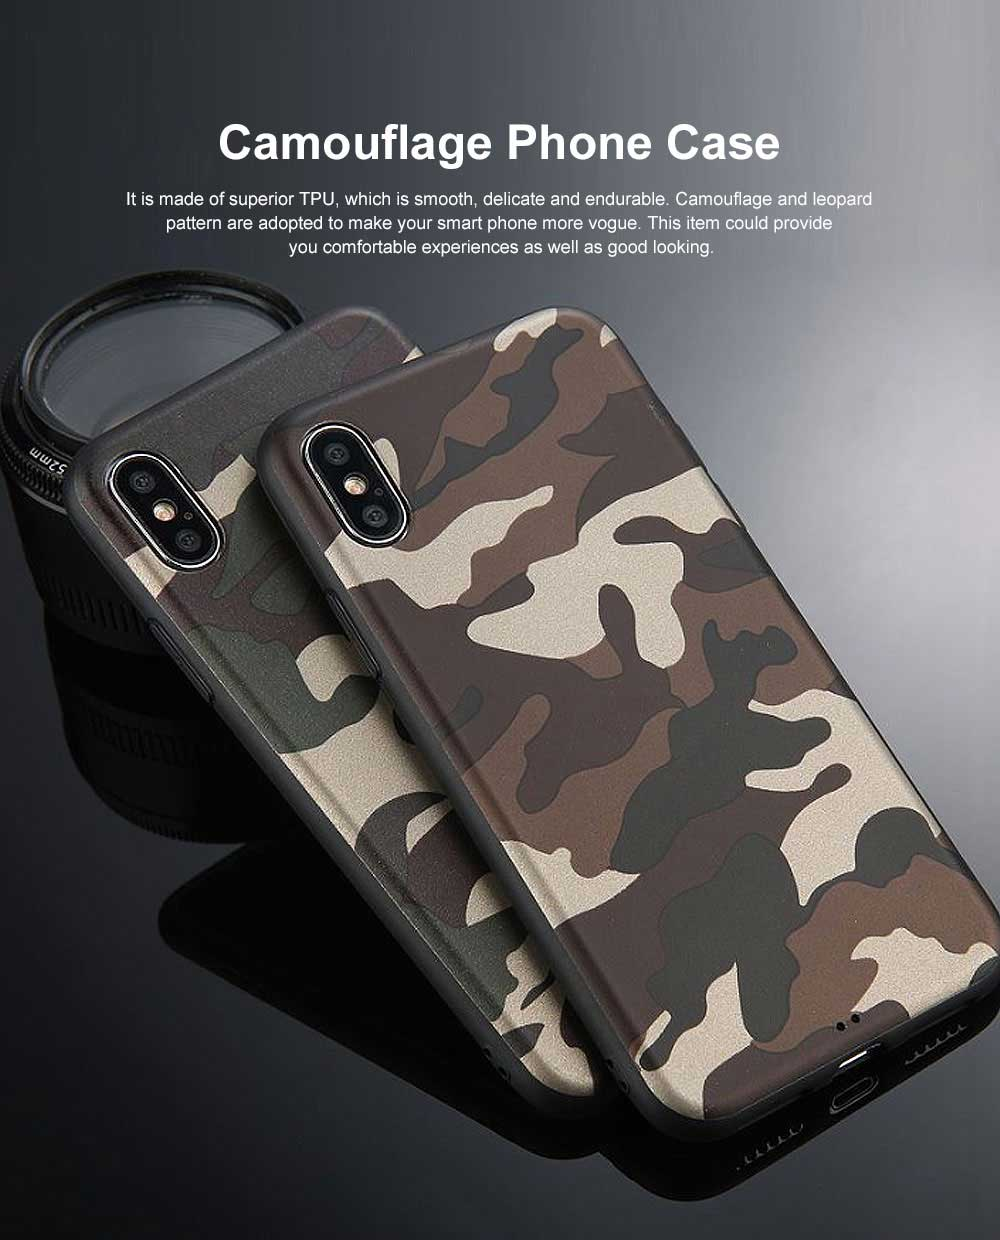 Camouflage Phone Case, Leopard Print Case Cover, Smooth TPU Phone Case, Luxury Ultra Thin Case Cover for iPhone 0